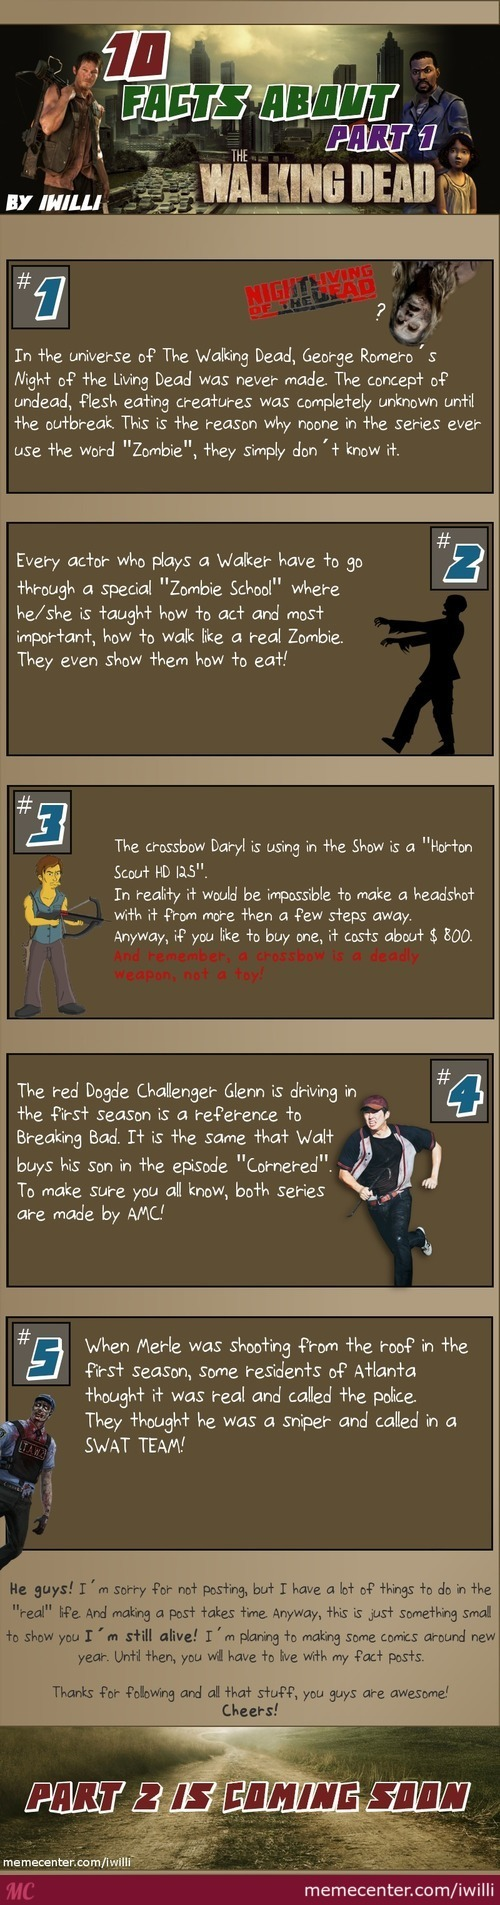 10 Facts About: The Walking Dead - Part 1